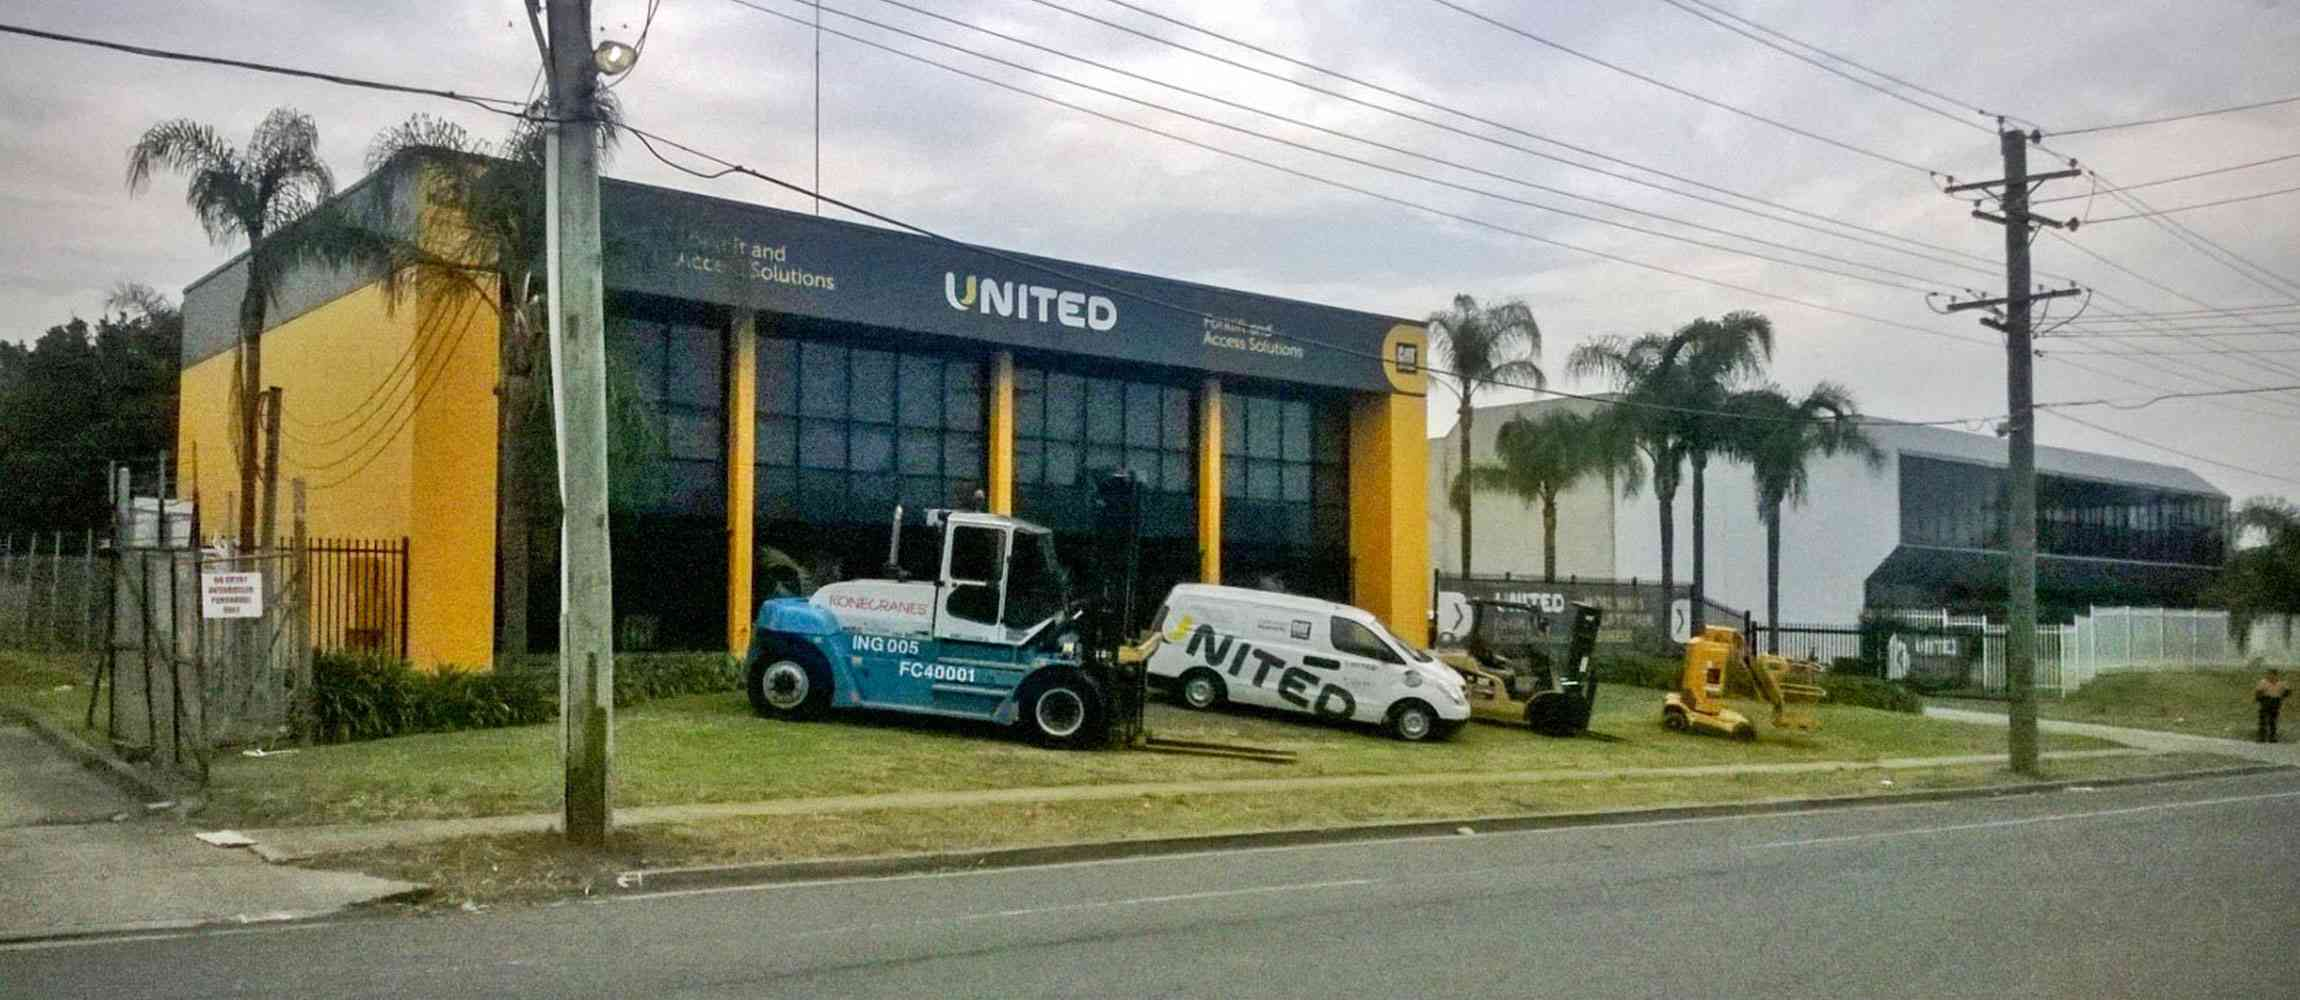 United Sydney branch in the suburb of Wetherill Park